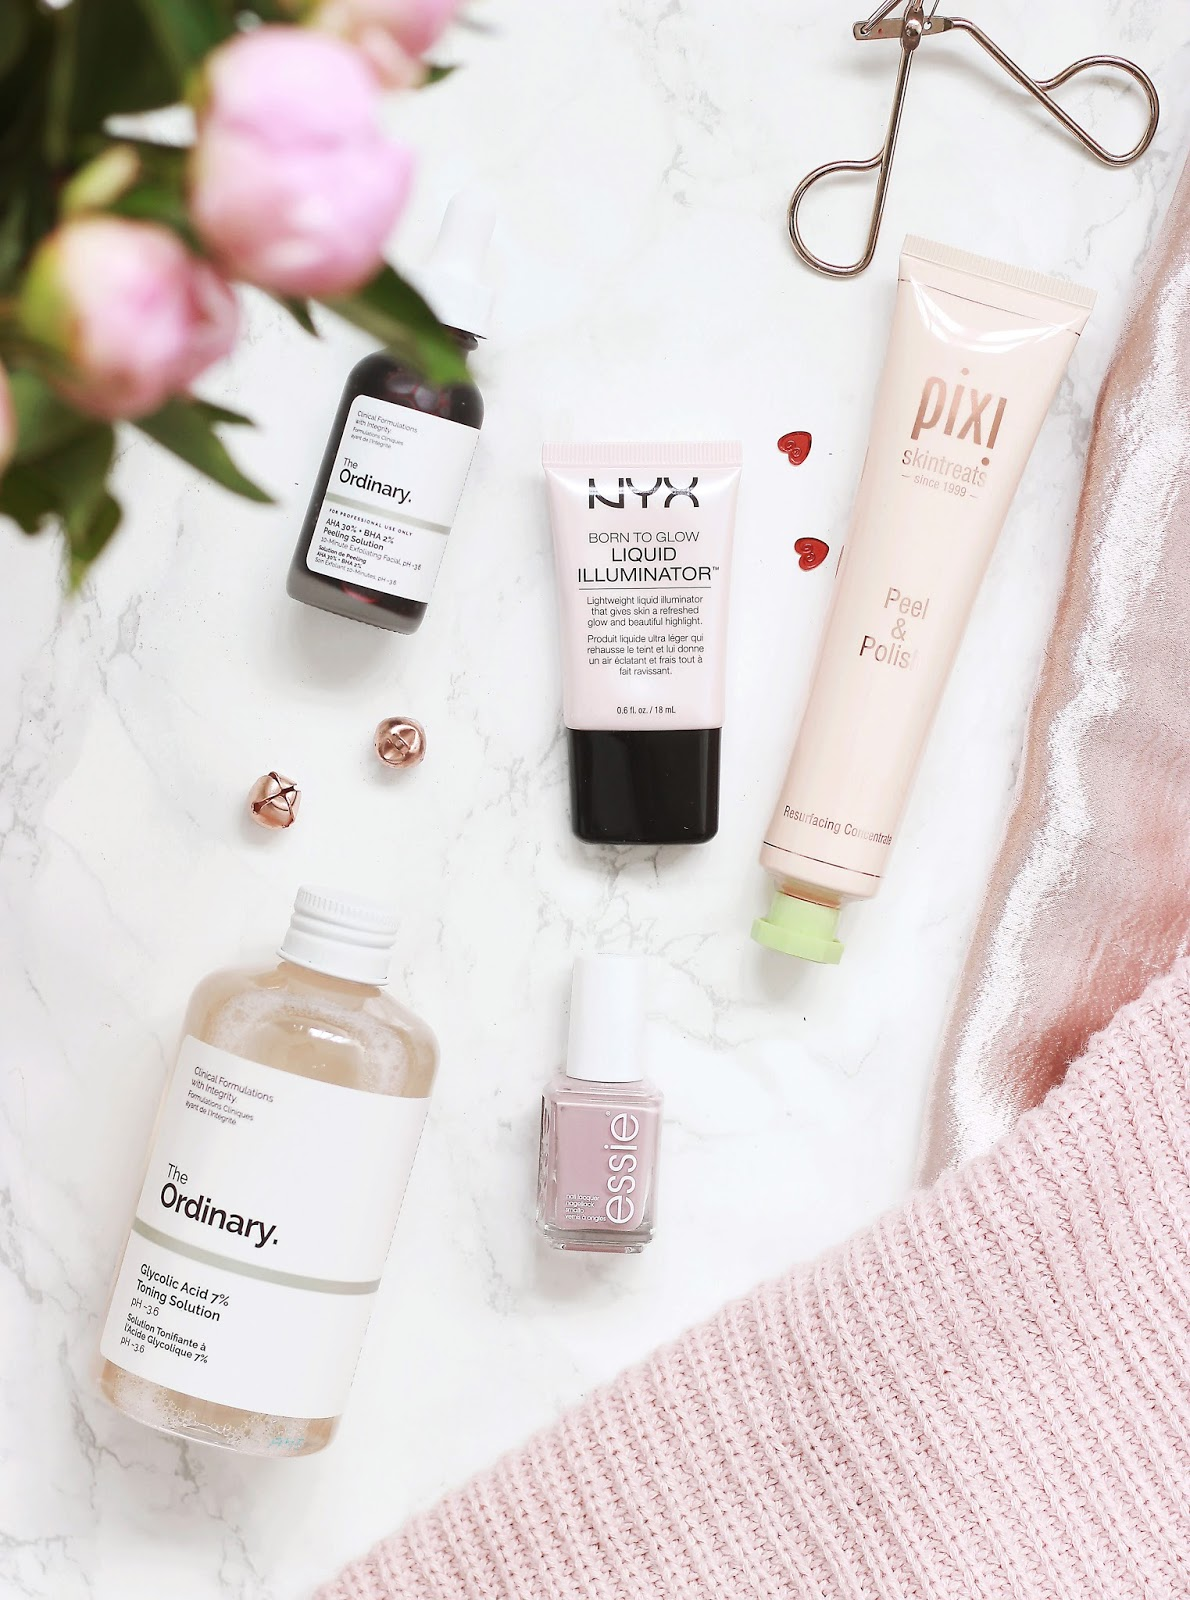 The Ordinary Glycolic Acid, Pixi Peel and Polish, NYX illuminator